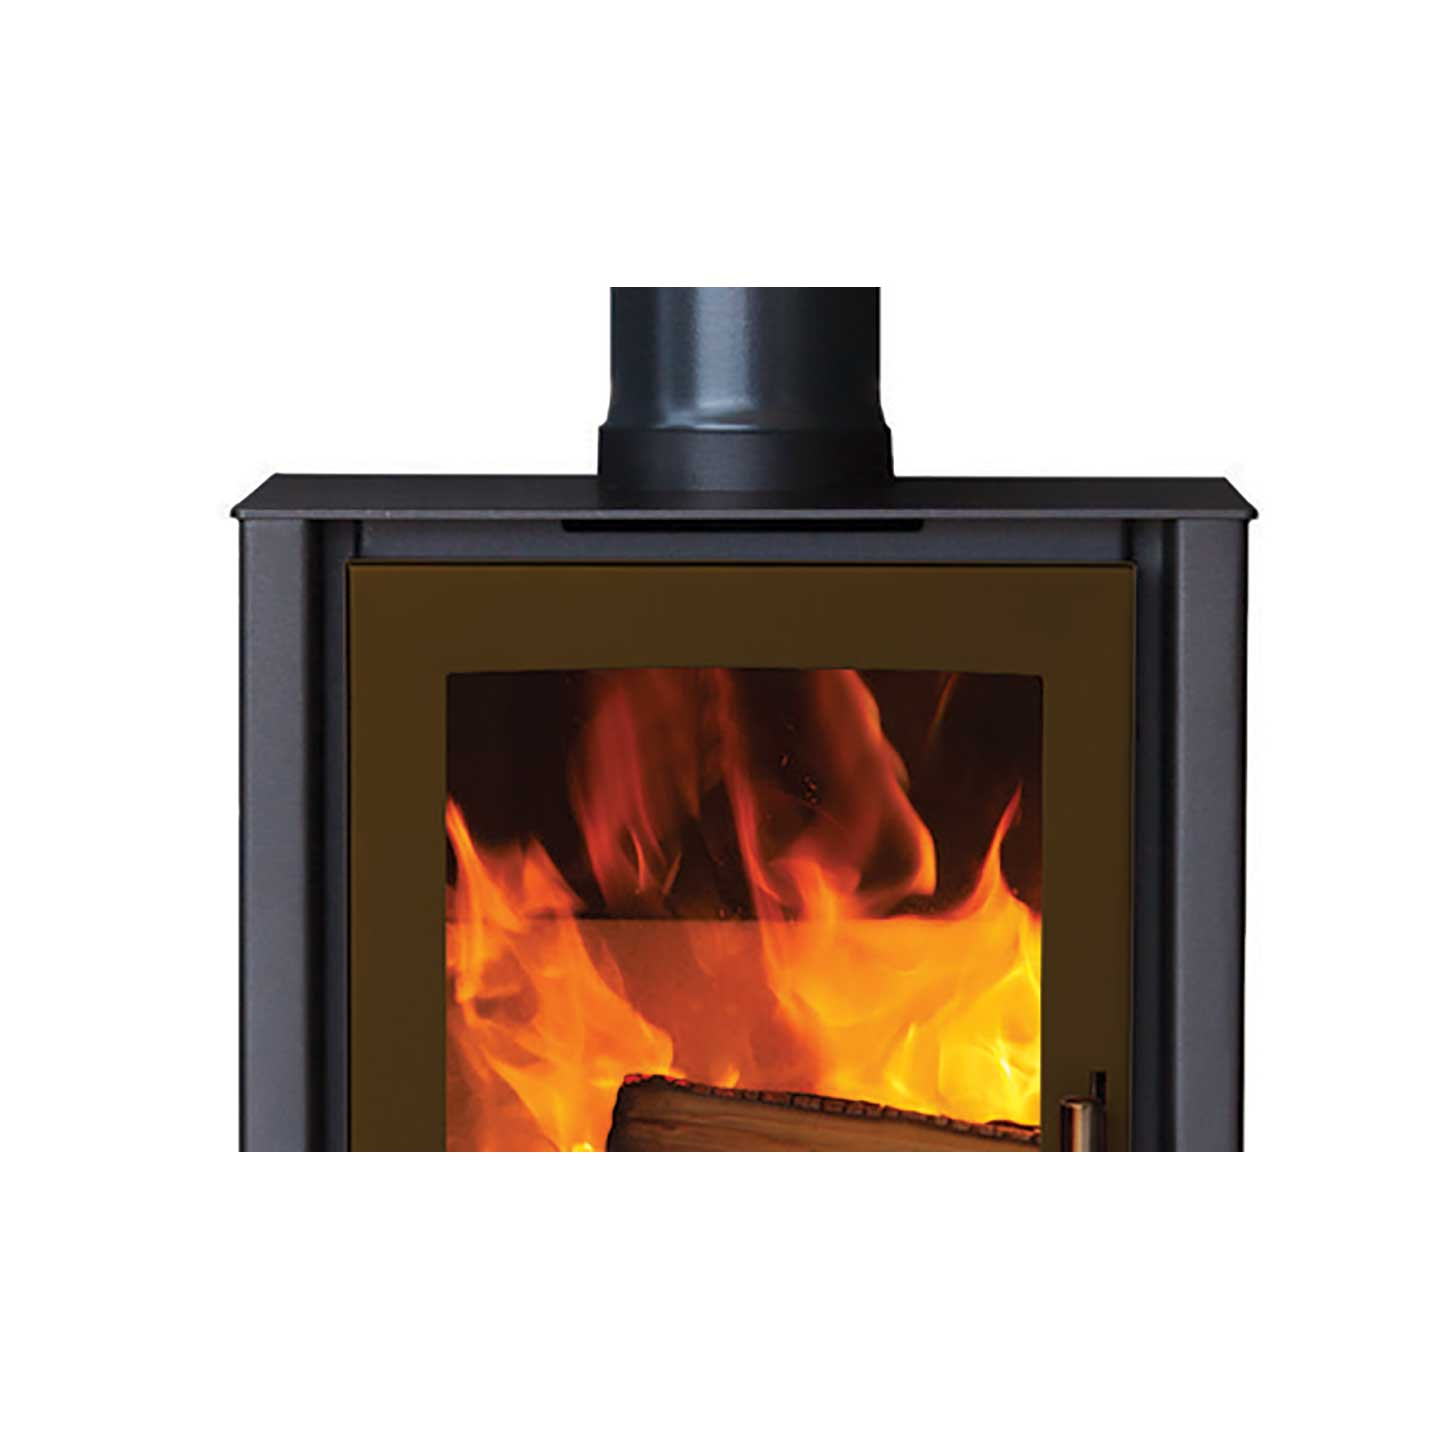 Aarrow i400 Mid Freestanding Stove The Stove Site Approved Dealers